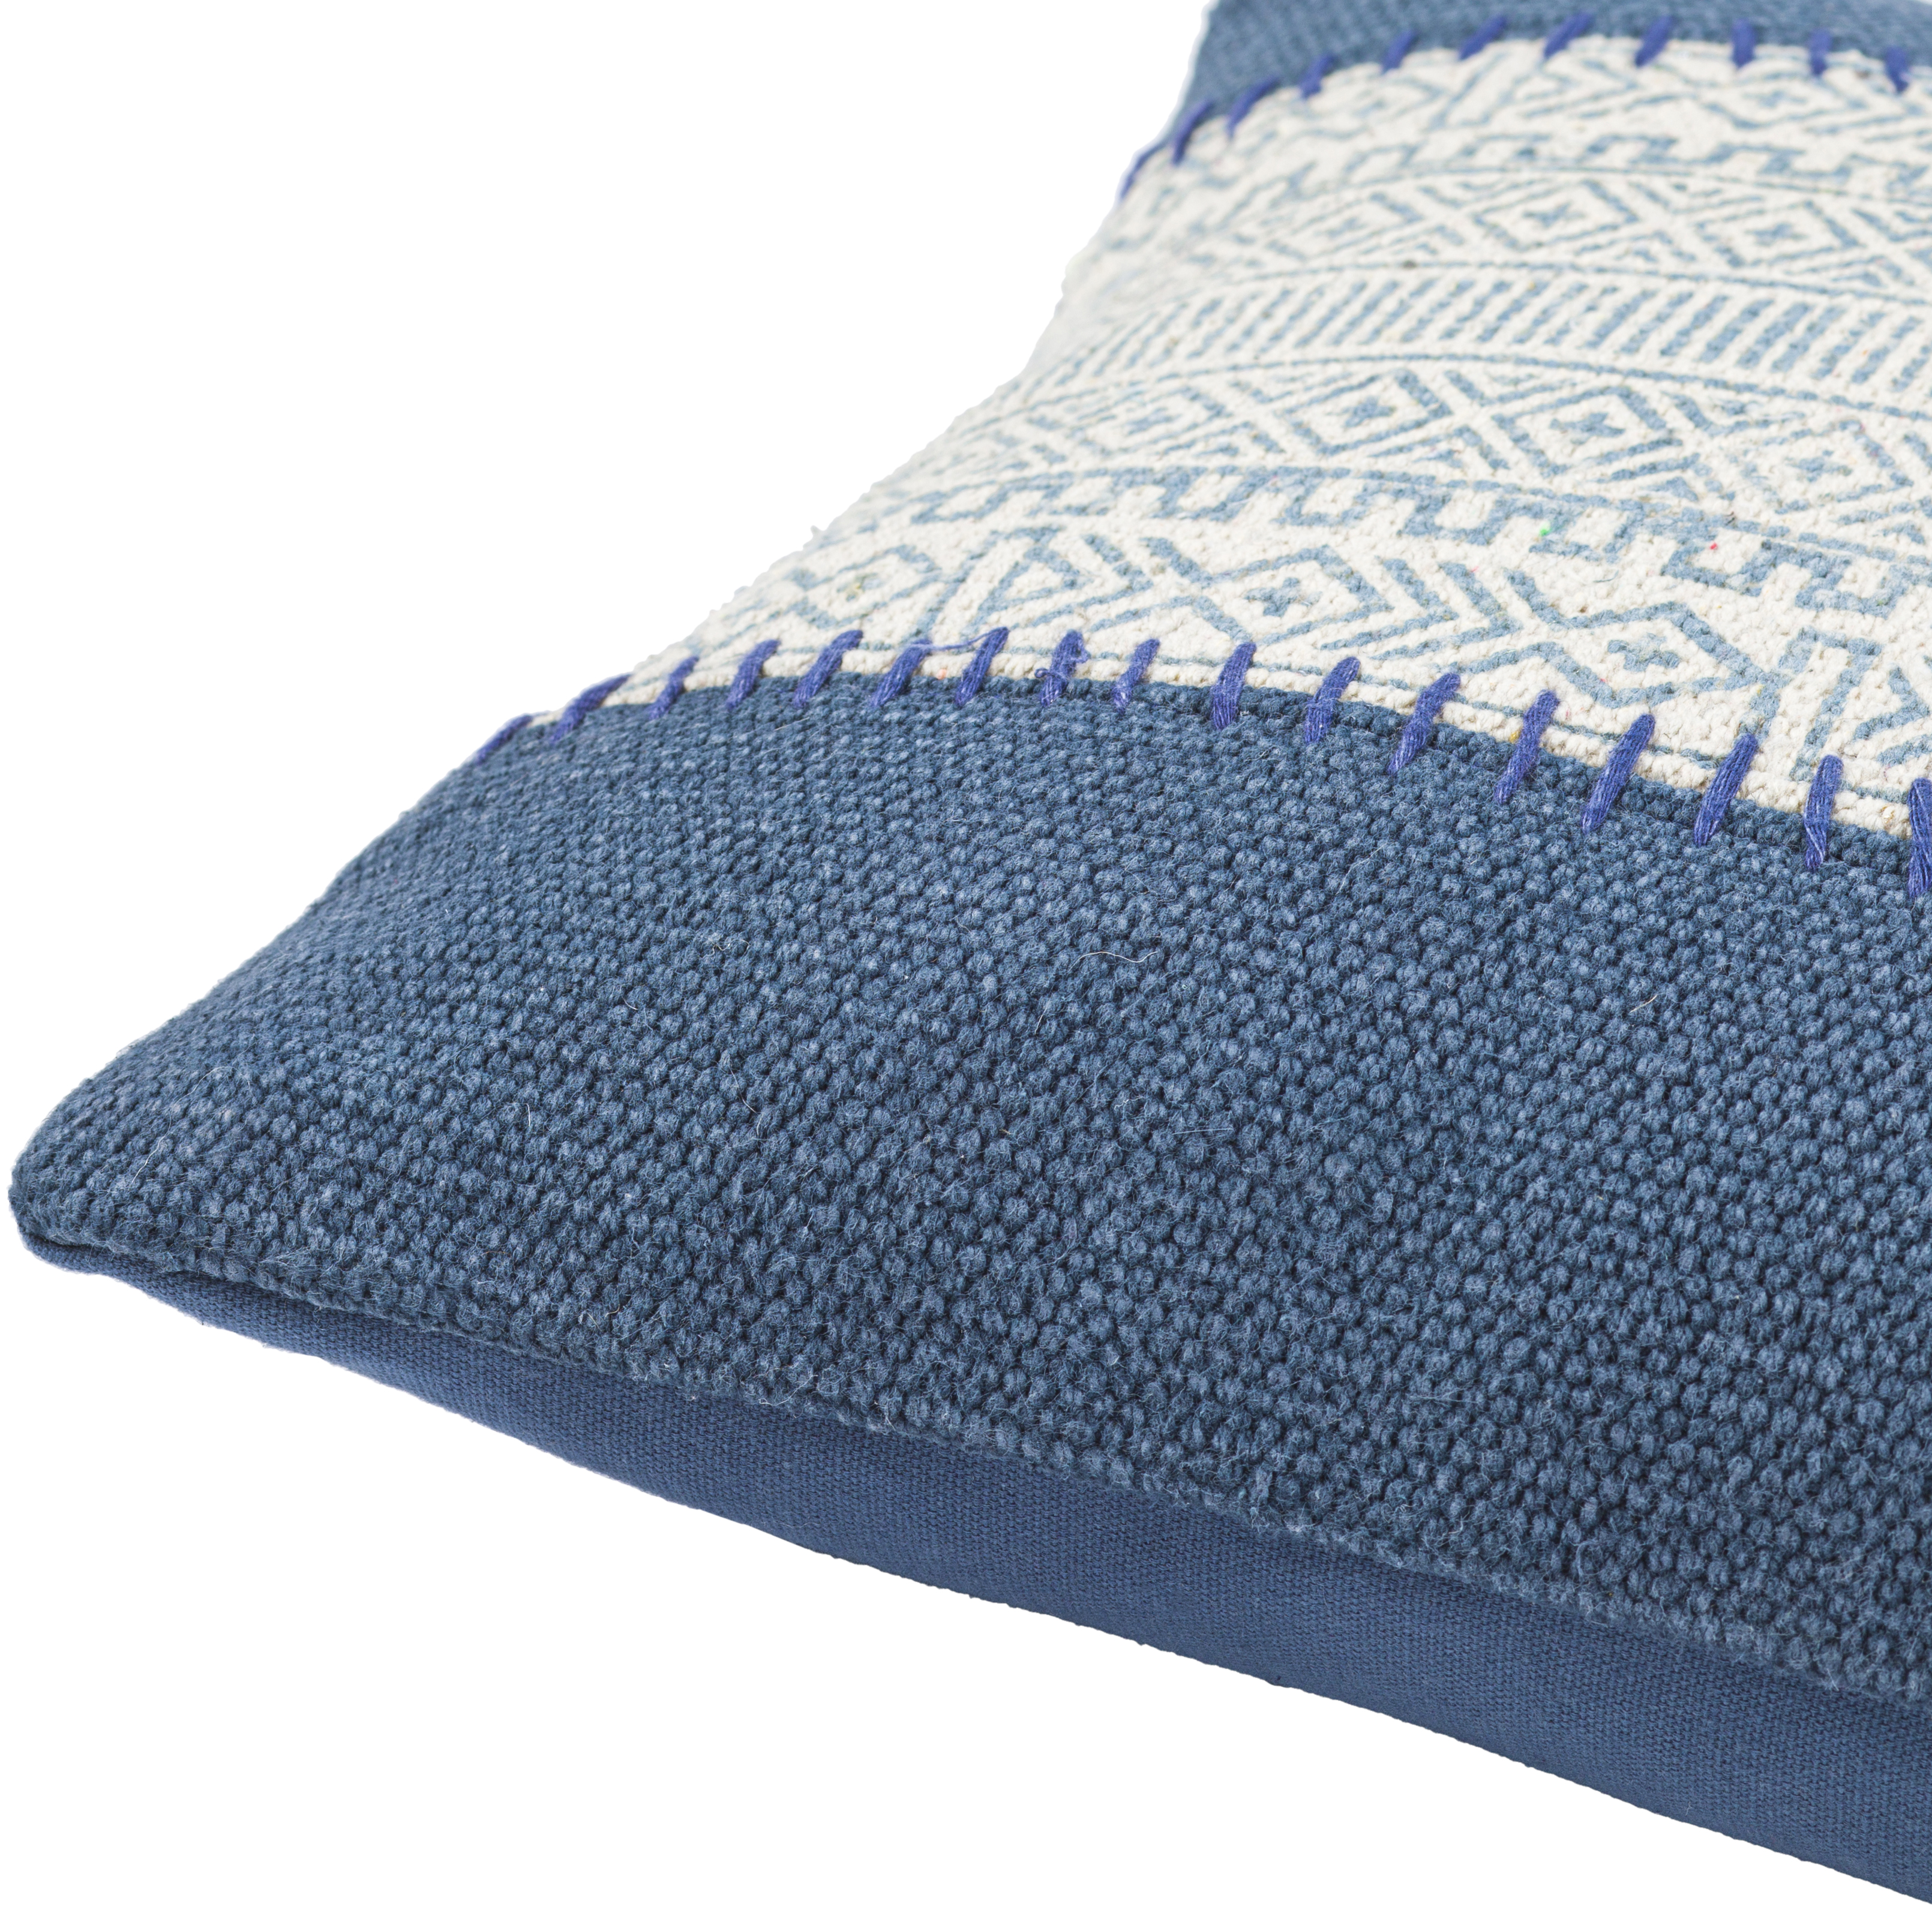 """Lola - LL-007 - 14""""H x 22""""W - pillow cover only"""